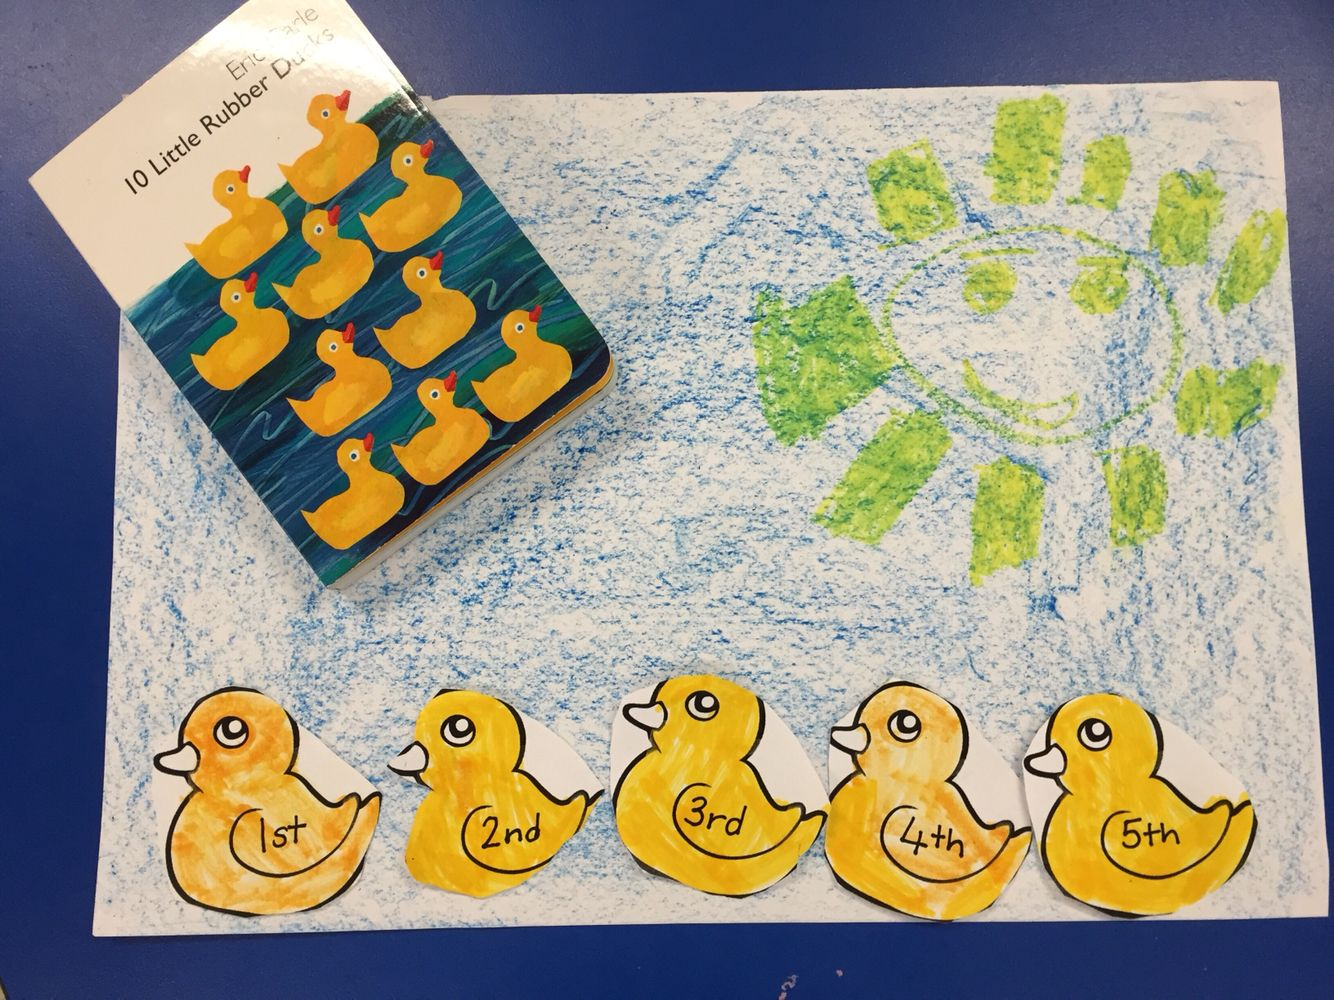 Ordinal Numbers We Read 10 Little Rubber Ducks By Eric Carle Then We Ordered The Ordinal Number Ducks Kindergarten Classroom Eric Carle Teaching Math